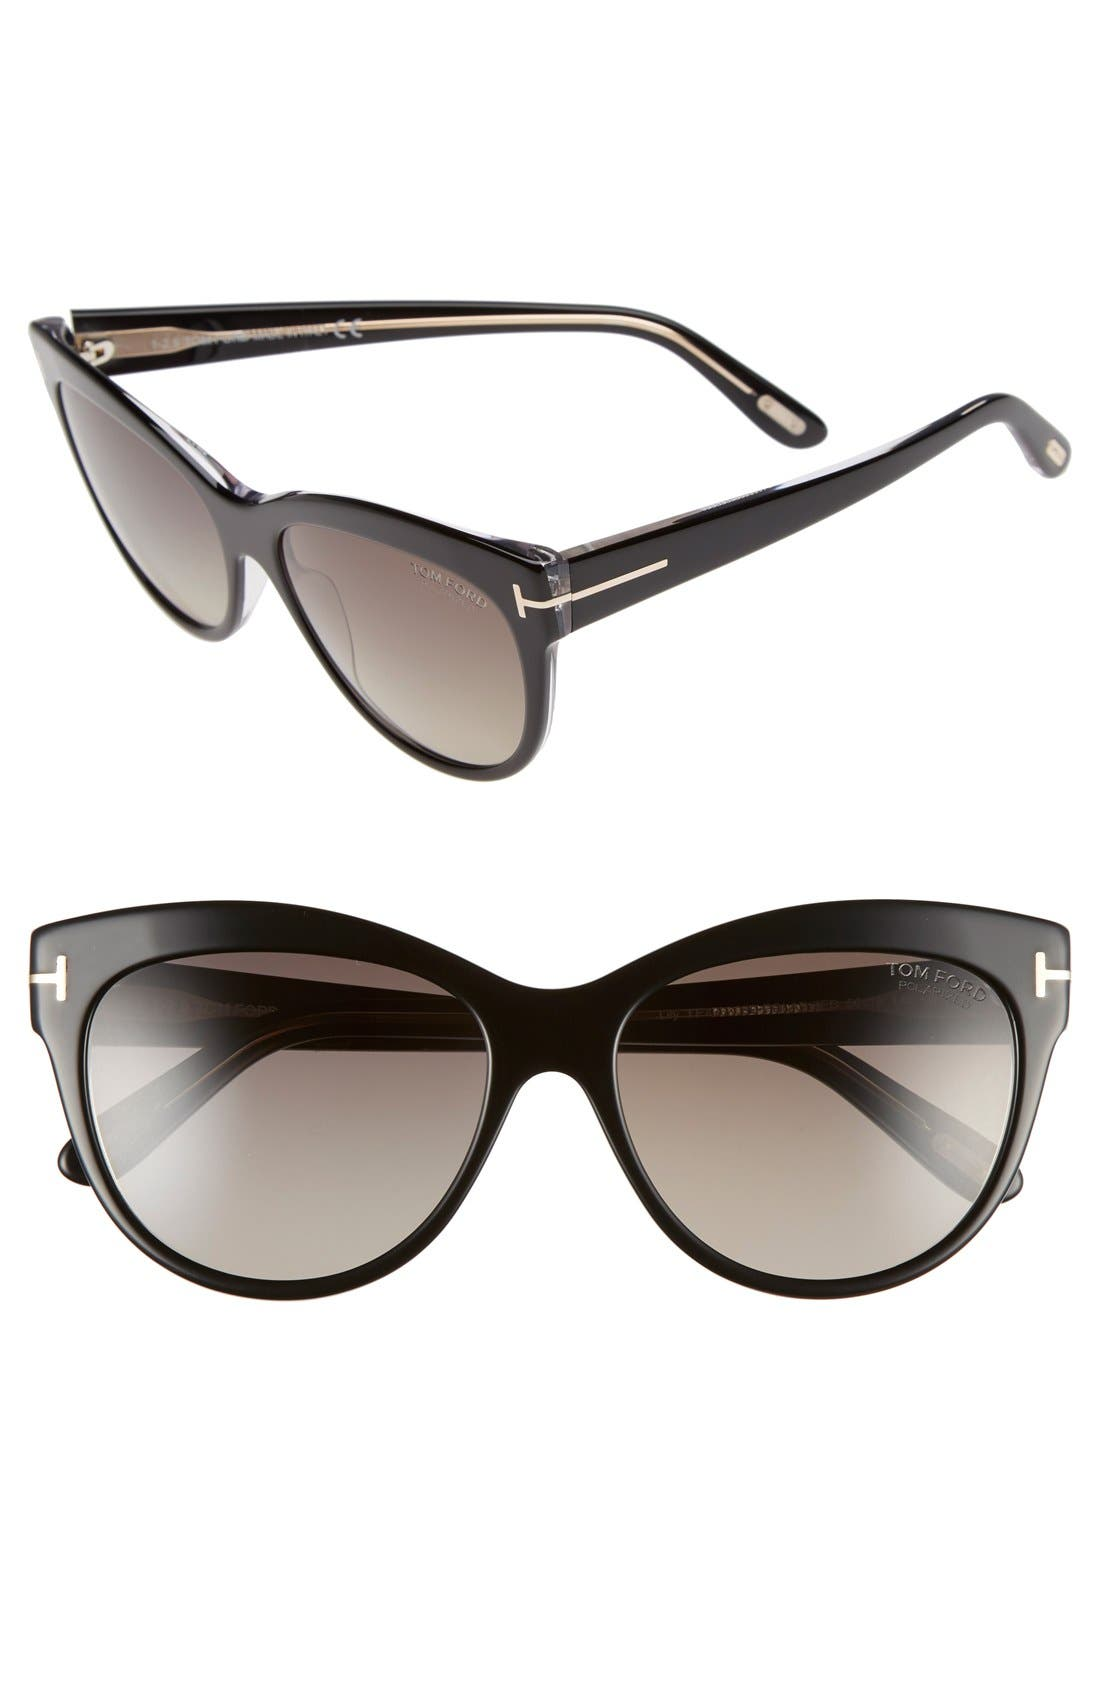 Main Image - Tom Ford 'Lily' 56mm Polarized Cat Eye Sunglasses